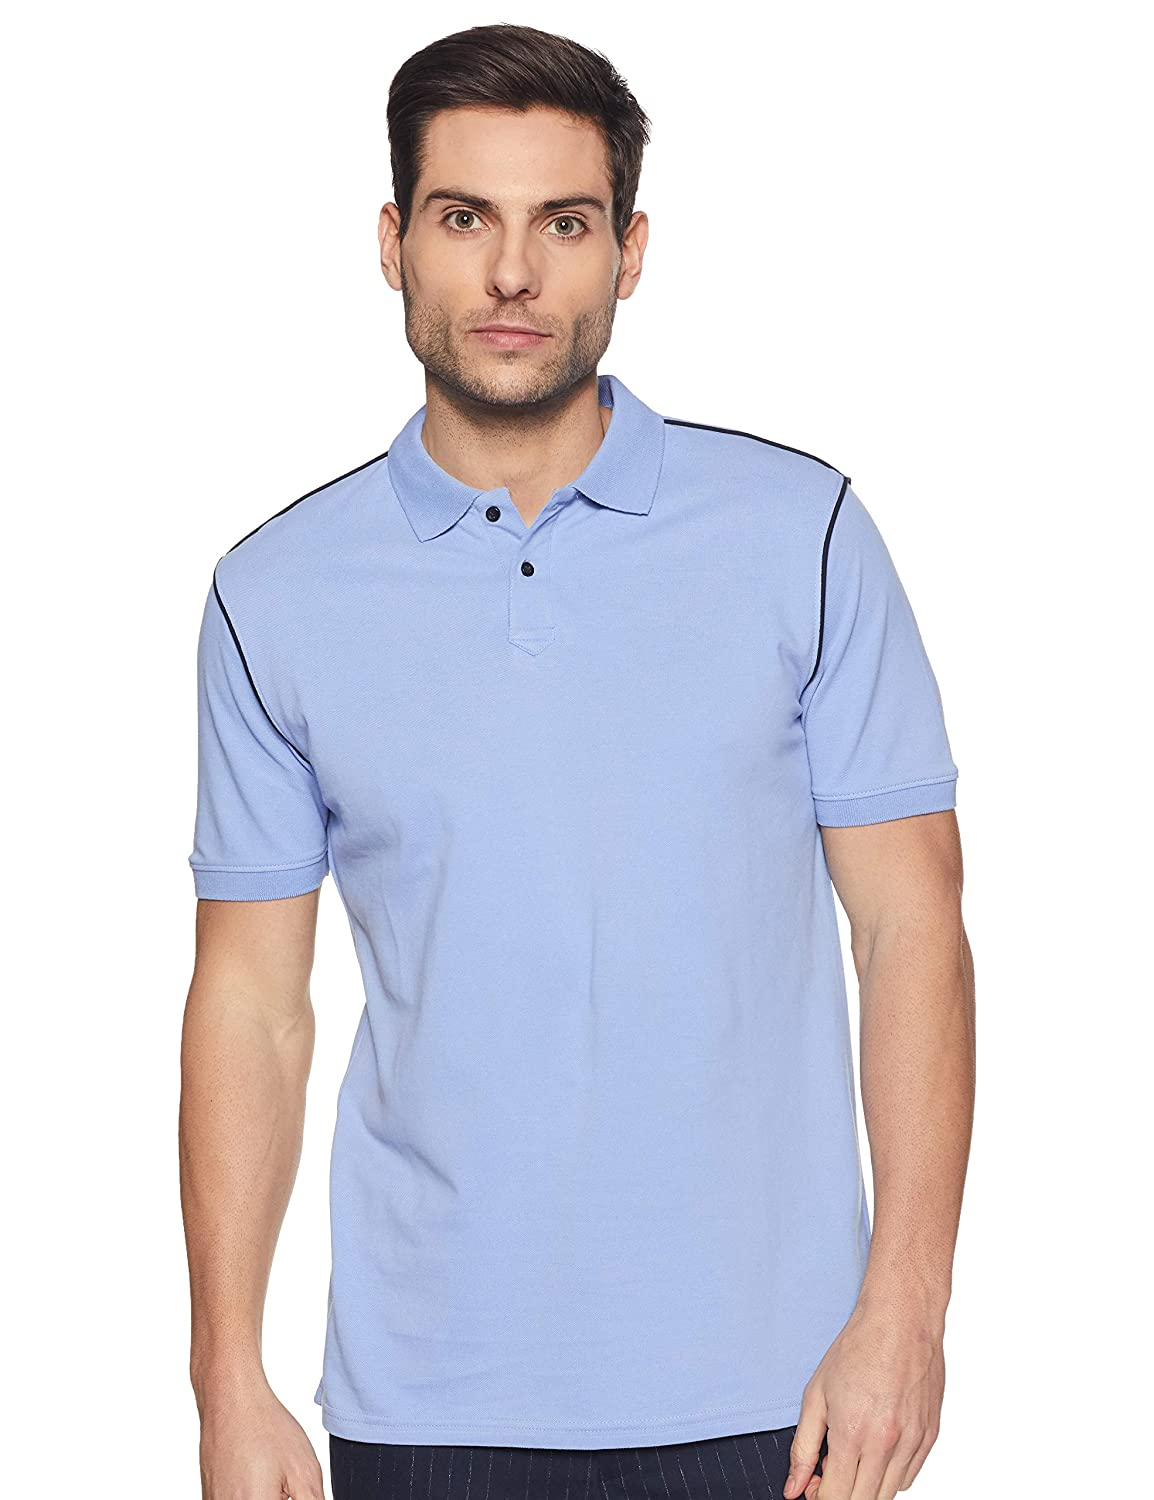 cottonworld-mens-classic-fit-polo